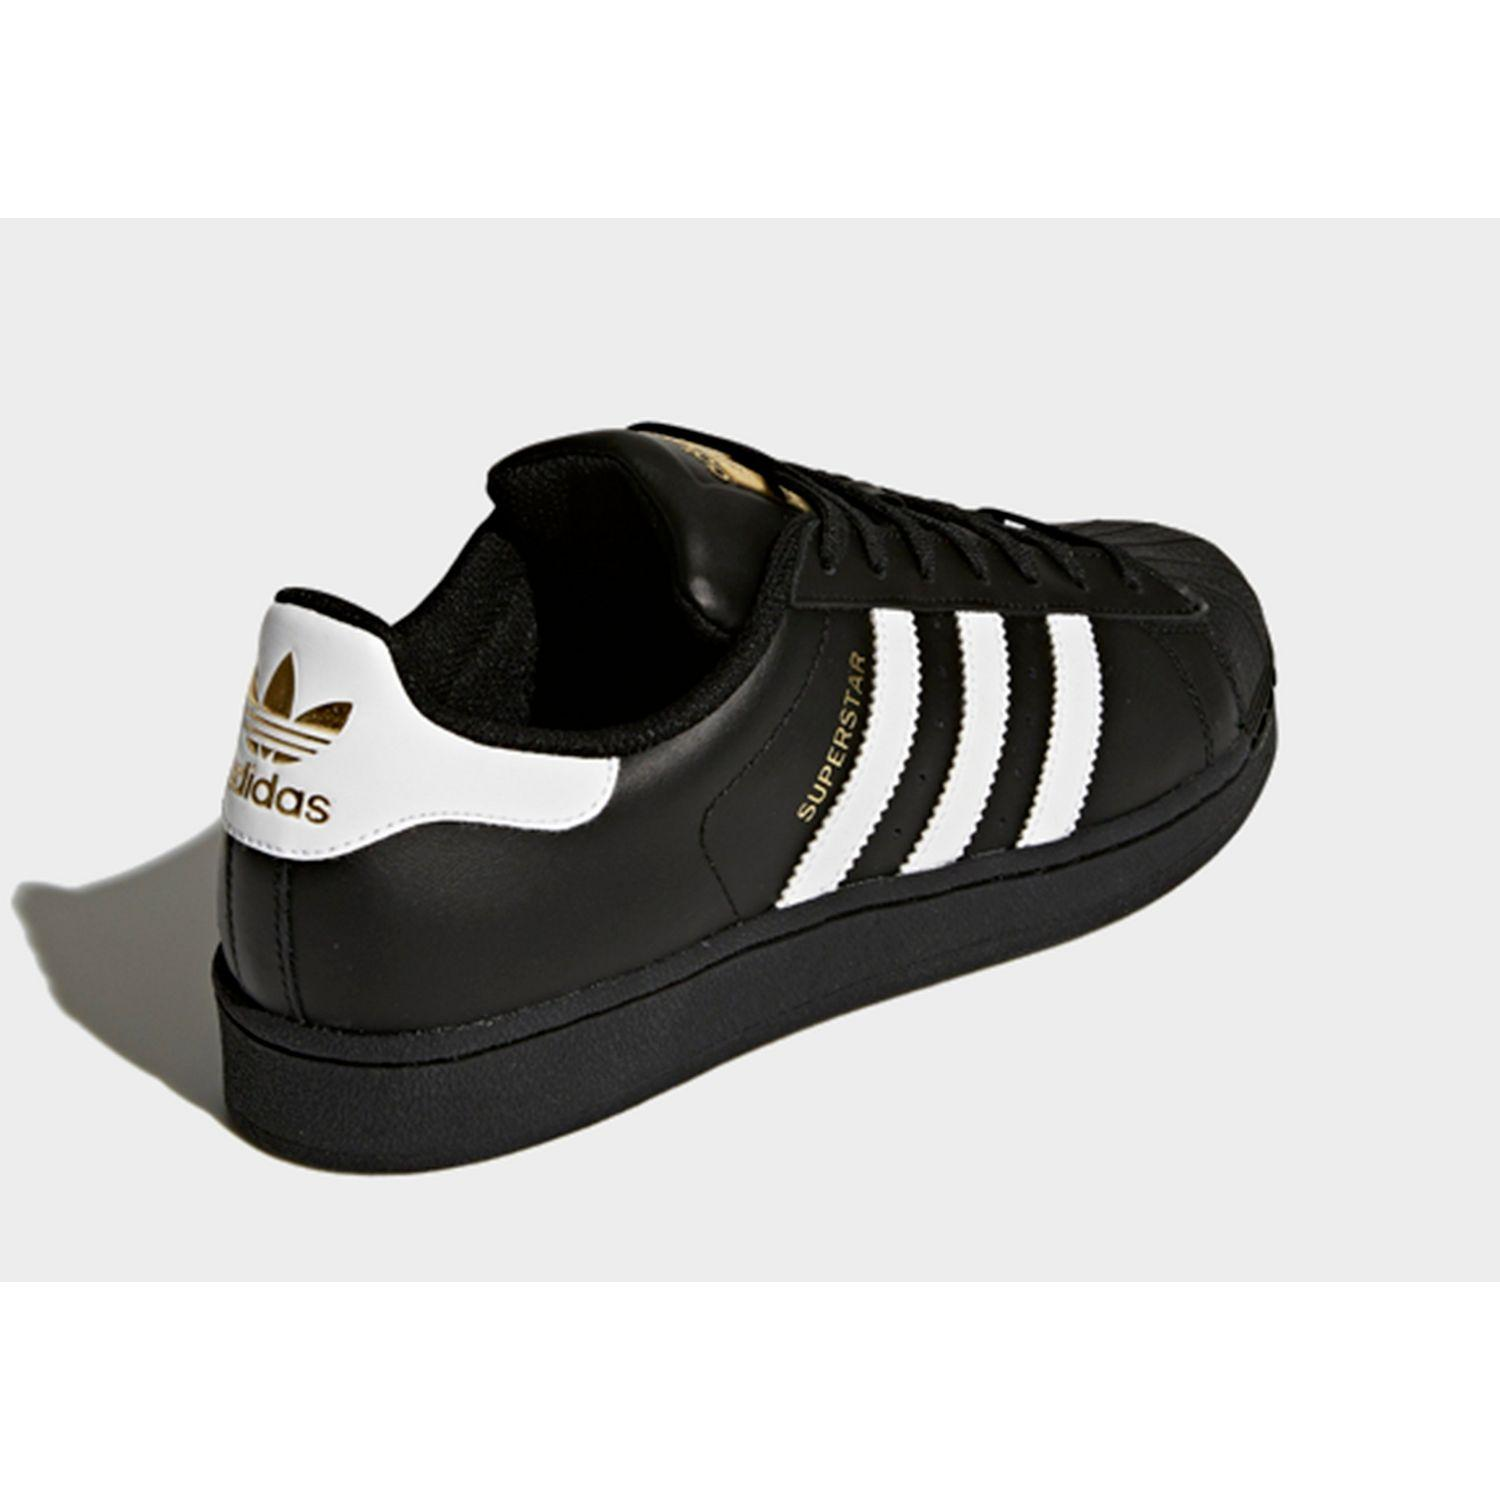 new product 3124d b2130 adidas Superstar Foundation Shoes in Black for Men - Lyst